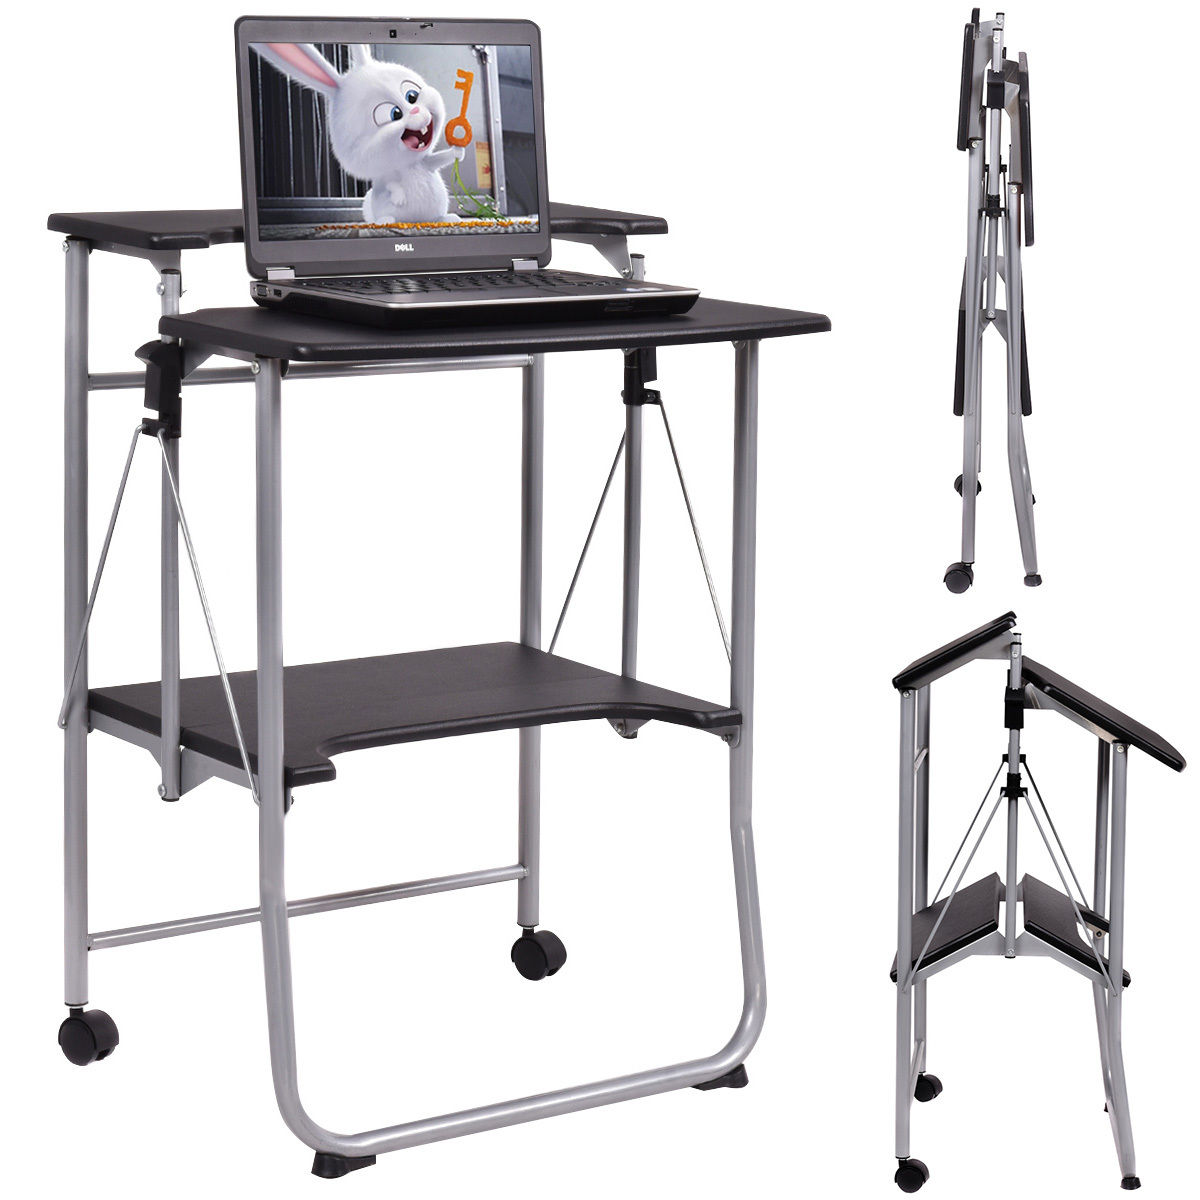 Costway Folding Computer Desk Laptop PC Table Workstation Study Writing Desk  W/ 2 Wheels